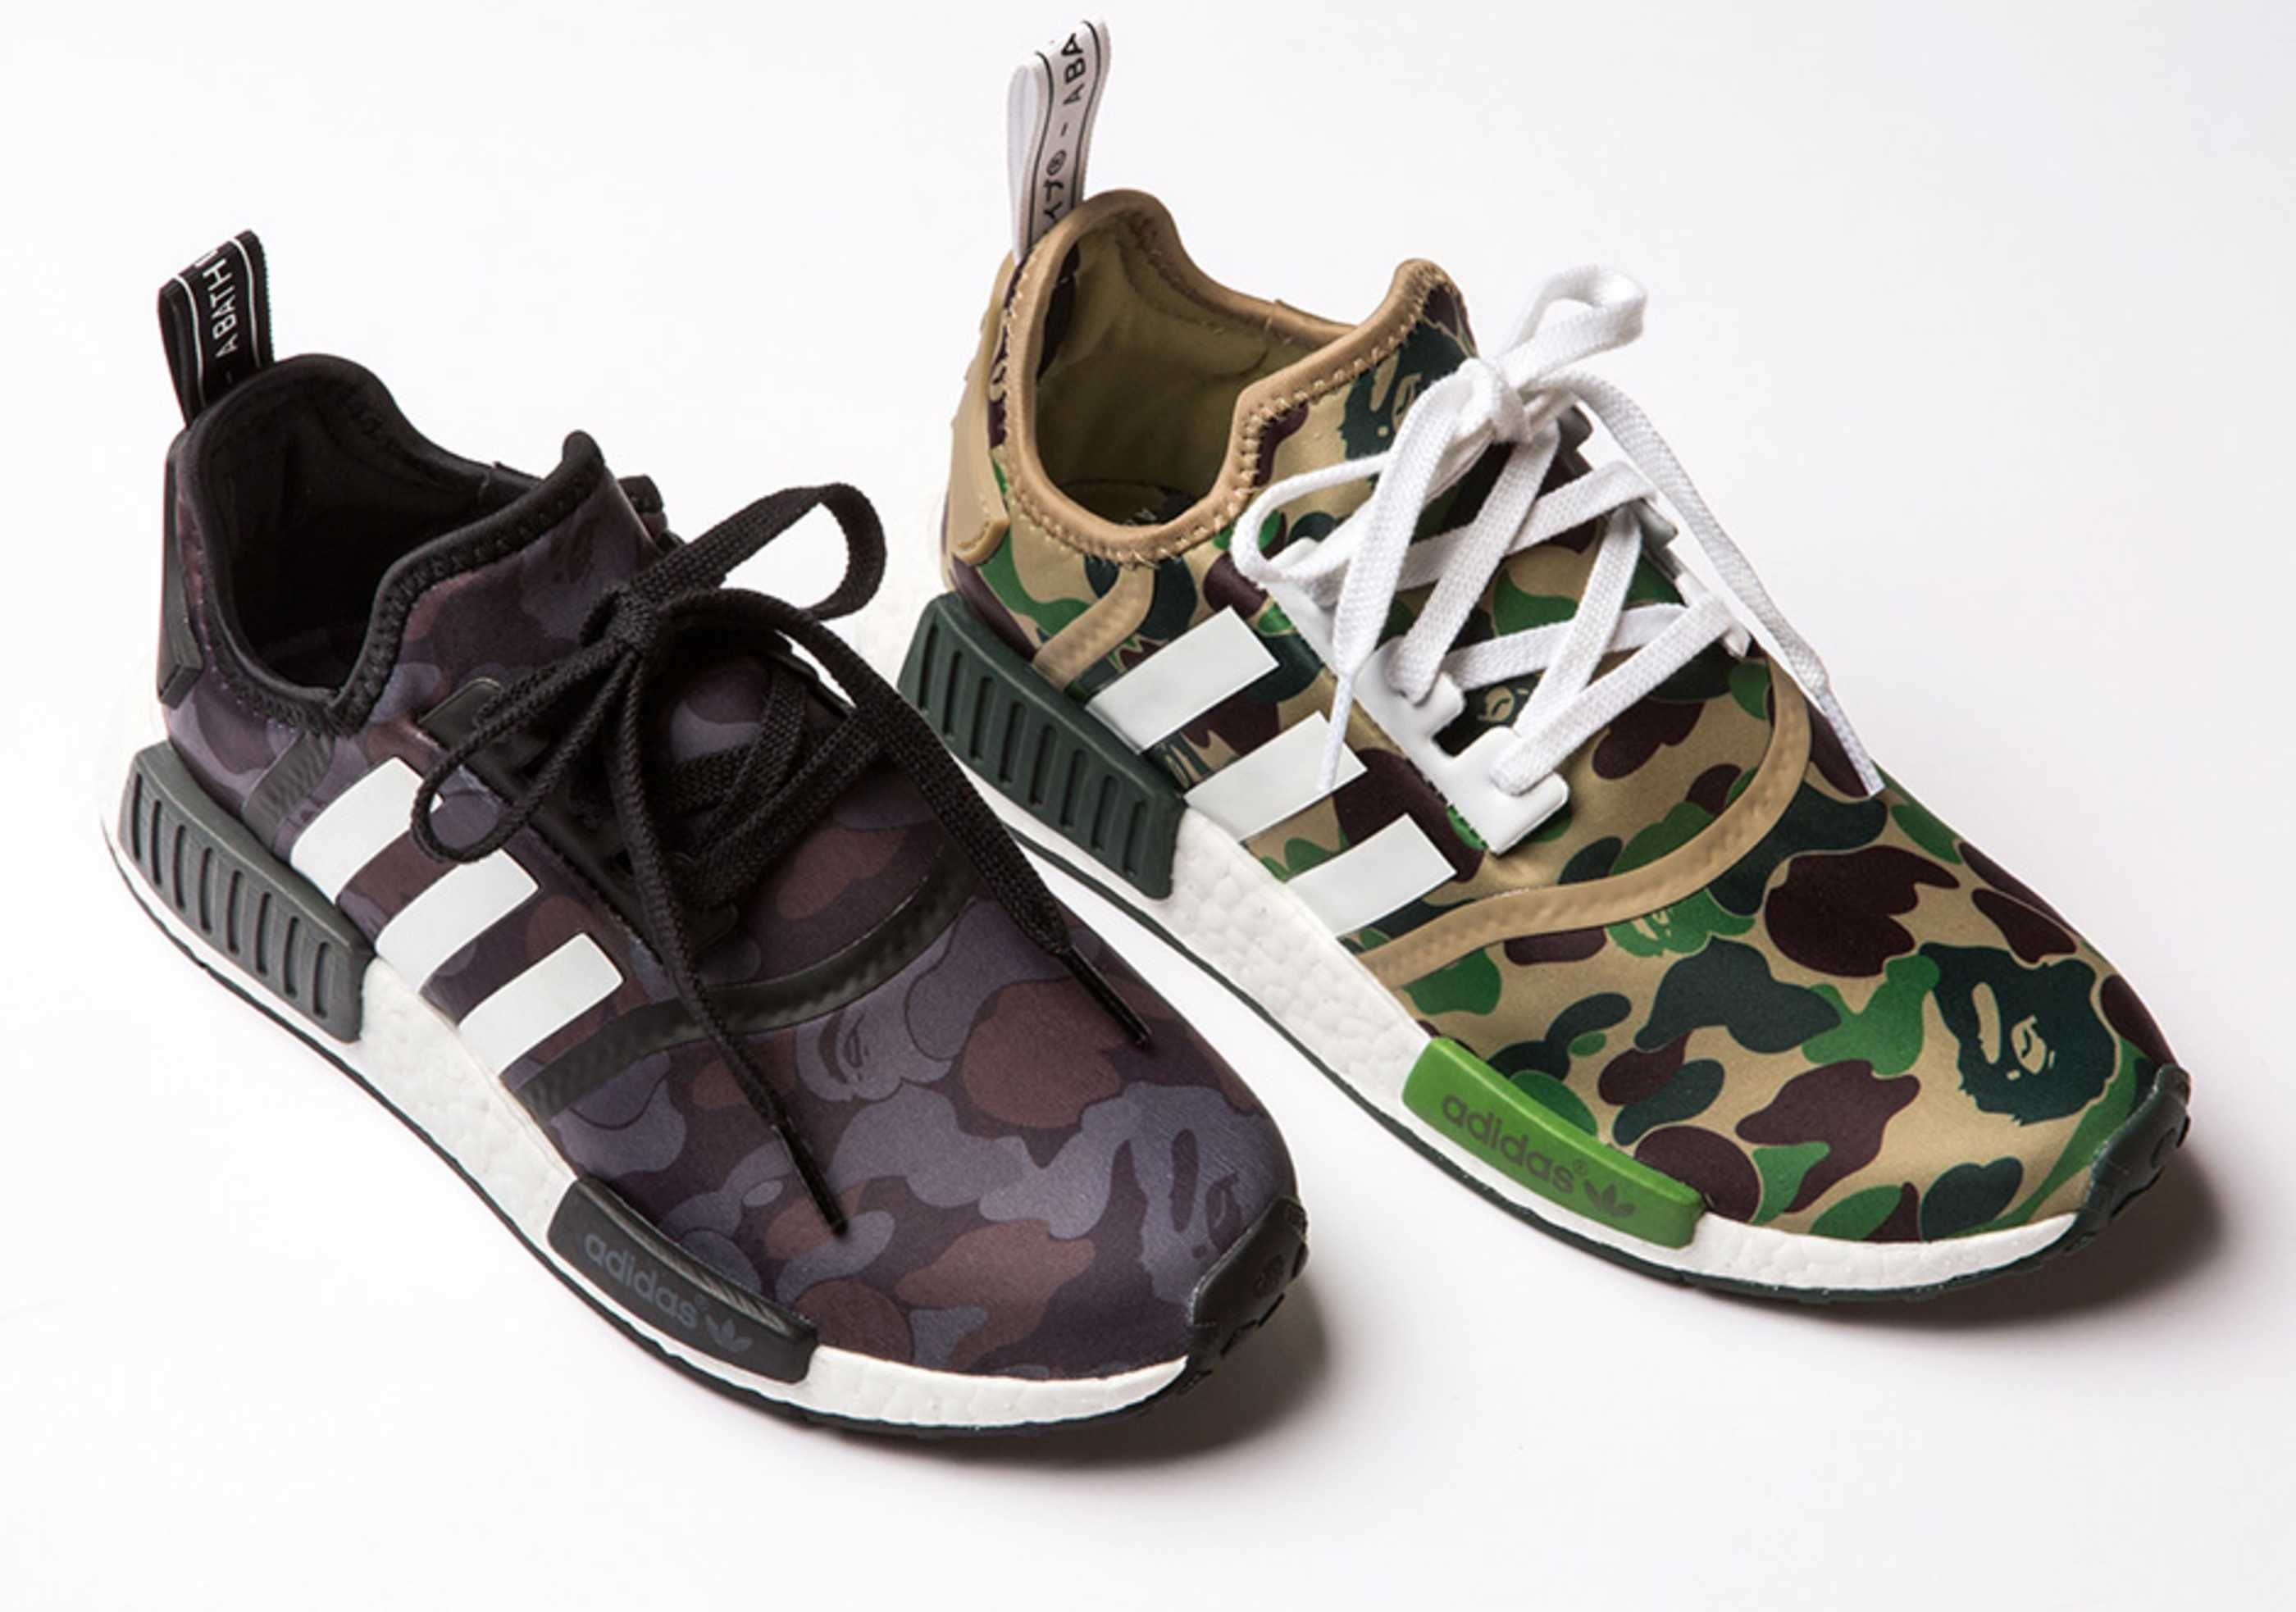 More collab sneakers for you. This time this pair is born out of a  collaboration between A Bathing Ape AKA BAPE and Adidas, and the result, ...